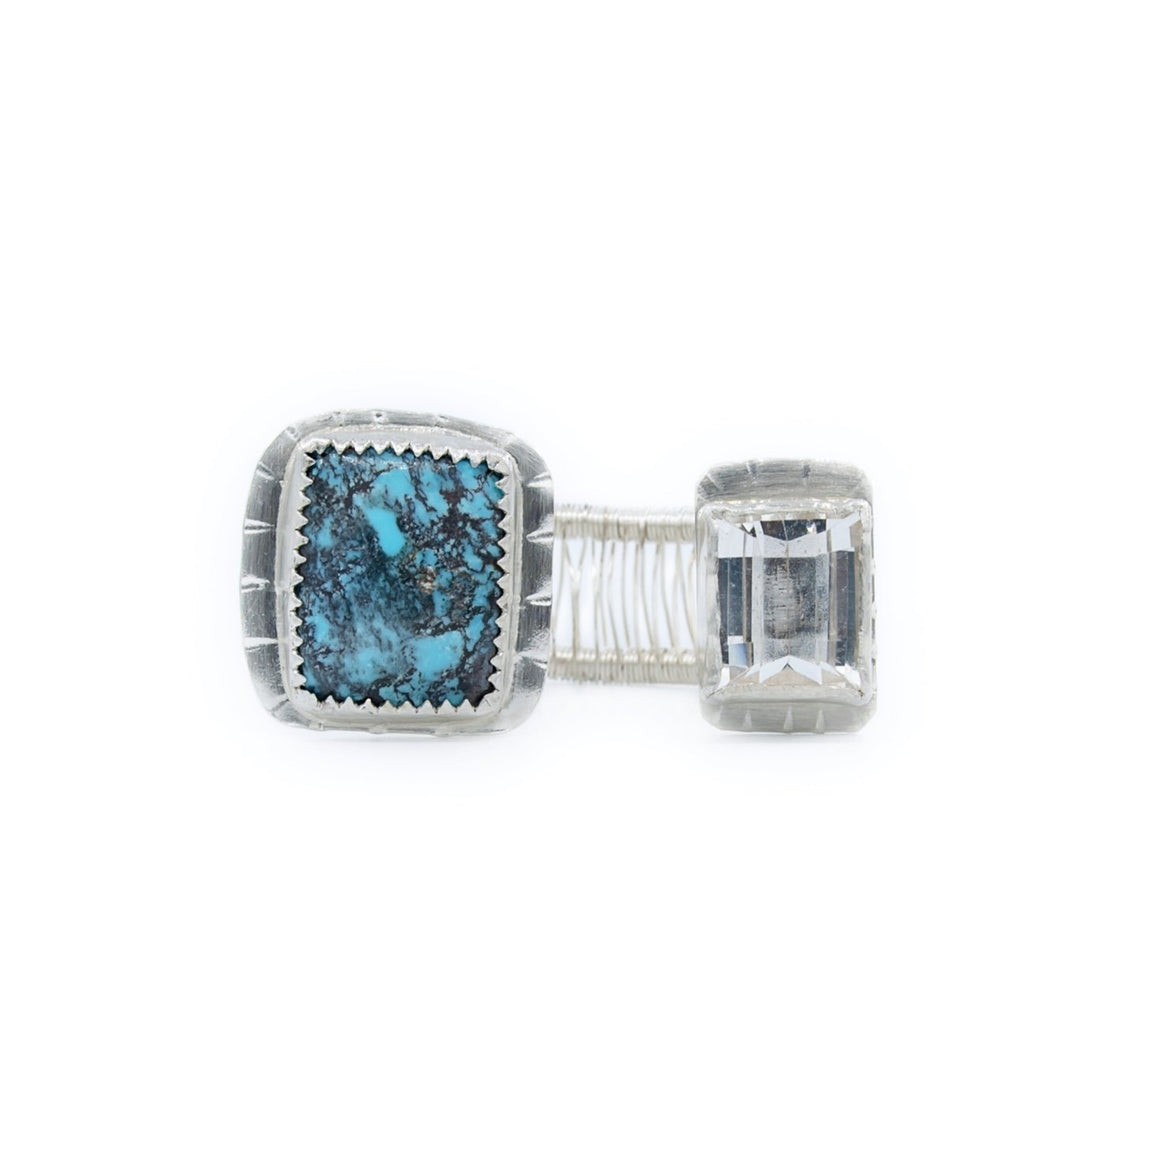 Turquoise, Silver and White Topaz Woven Ring by Original Sin Jewelry